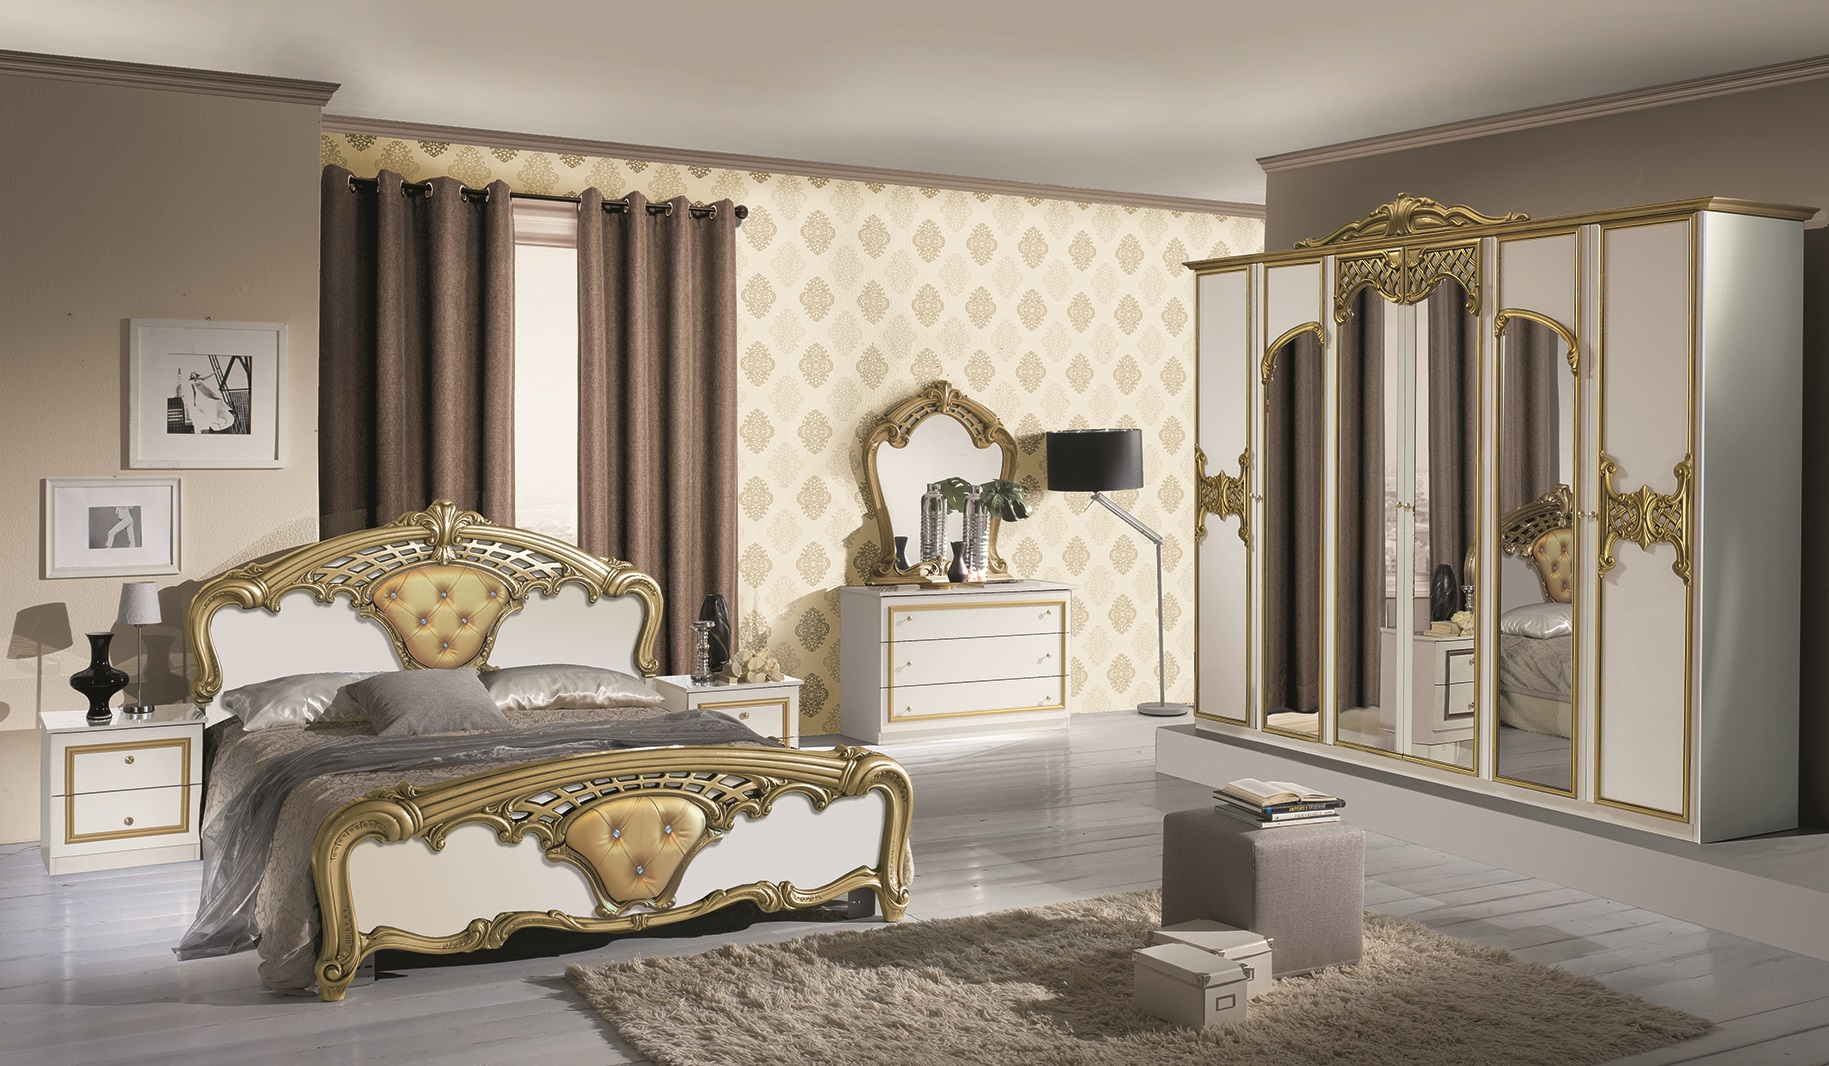 schlafzimmer elisa in schwarz gold 6 t rig luxus italienische dh ev blac g s 6a2x2. Black Bedroom Furniture Sets. Home Design Ideas